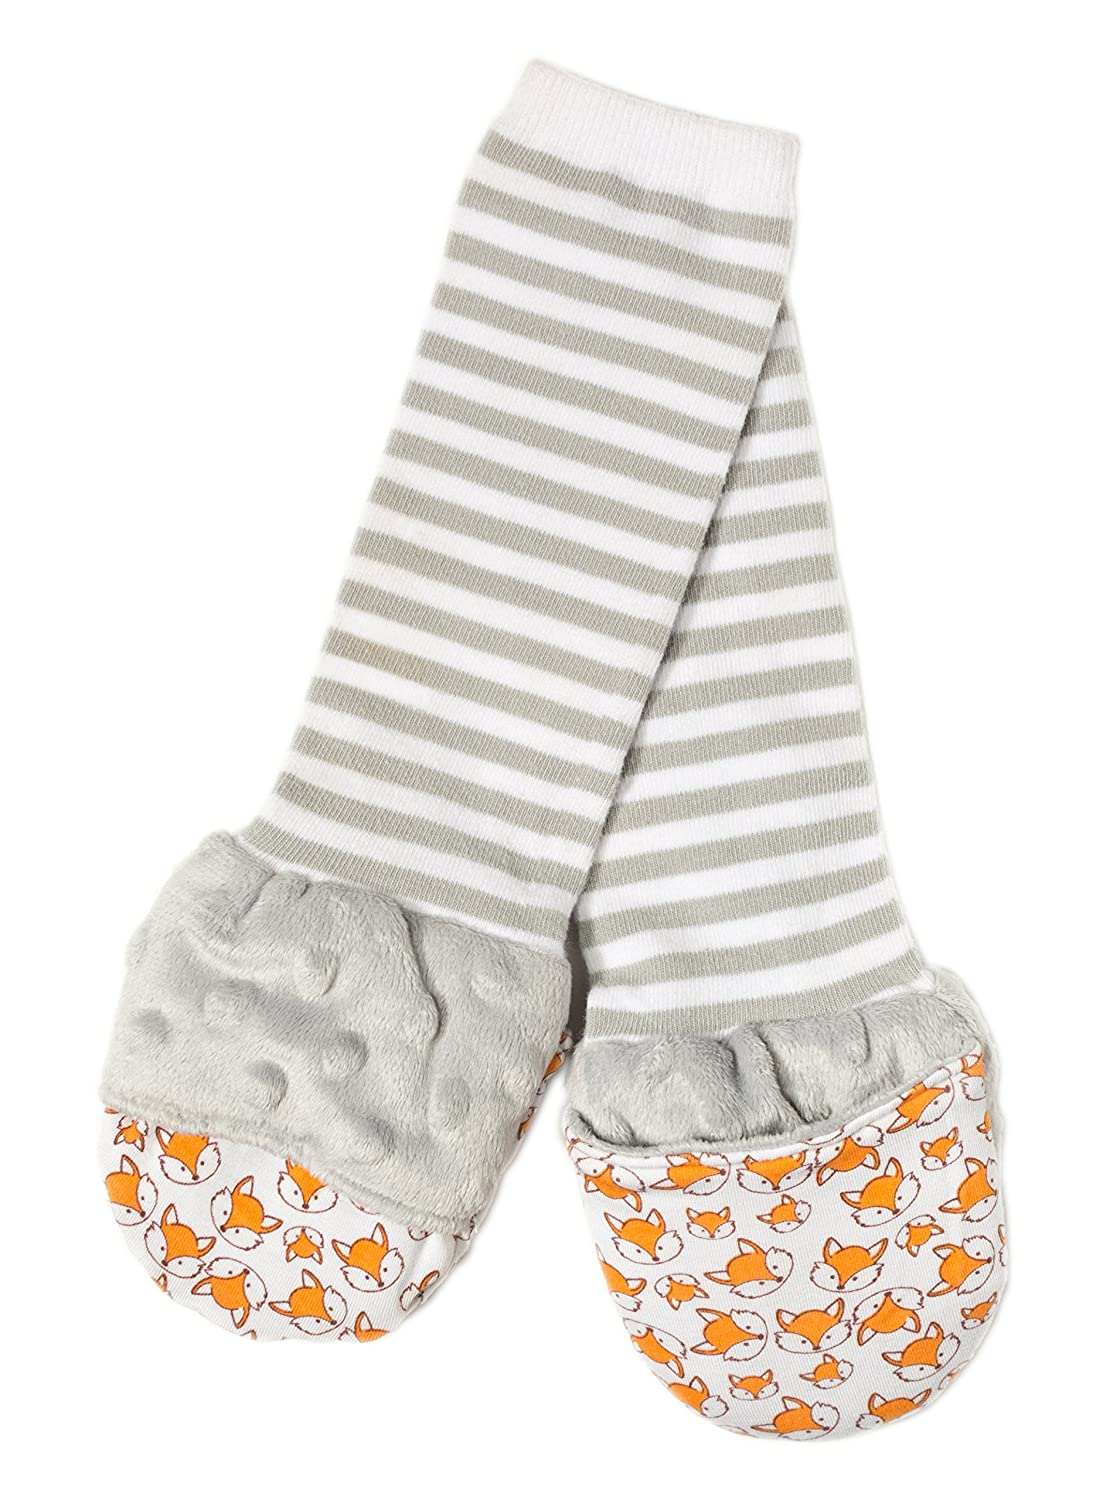 Handsocks Plushy Stay On Strap-Free No-Scratch & Warmth Baby & Kid Mittens (Medium (6-12 Months), Sweet Caroline (Stars))